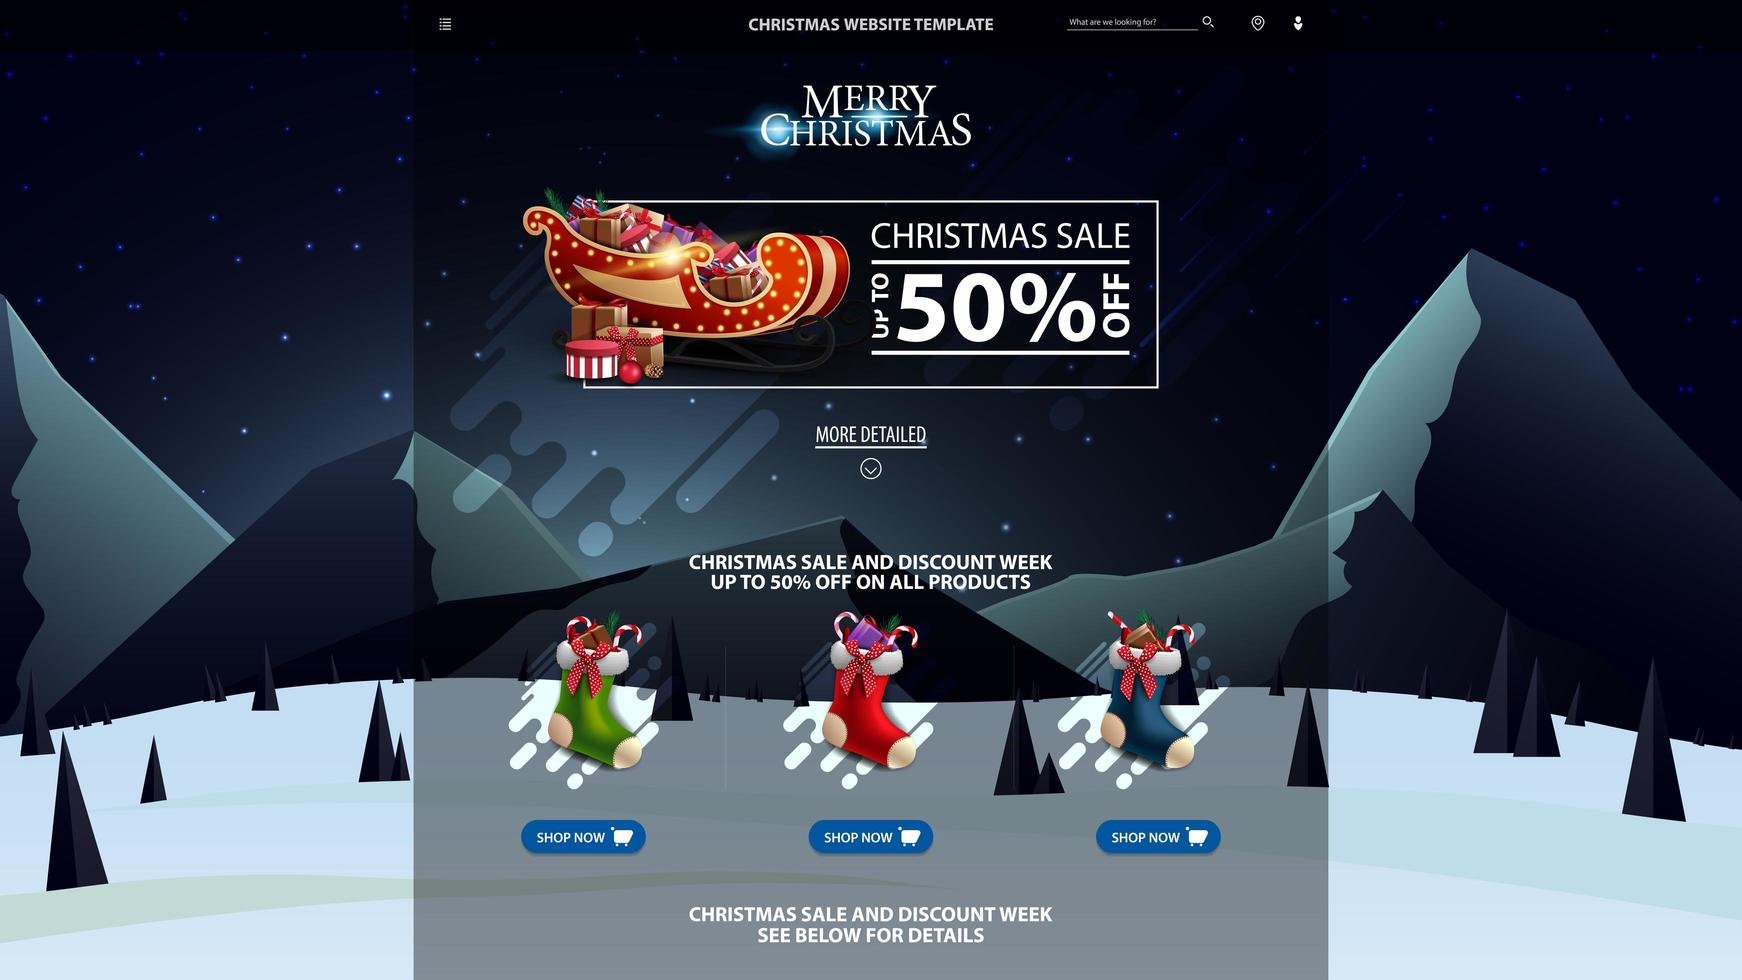 Christmas website template with discount banner vector